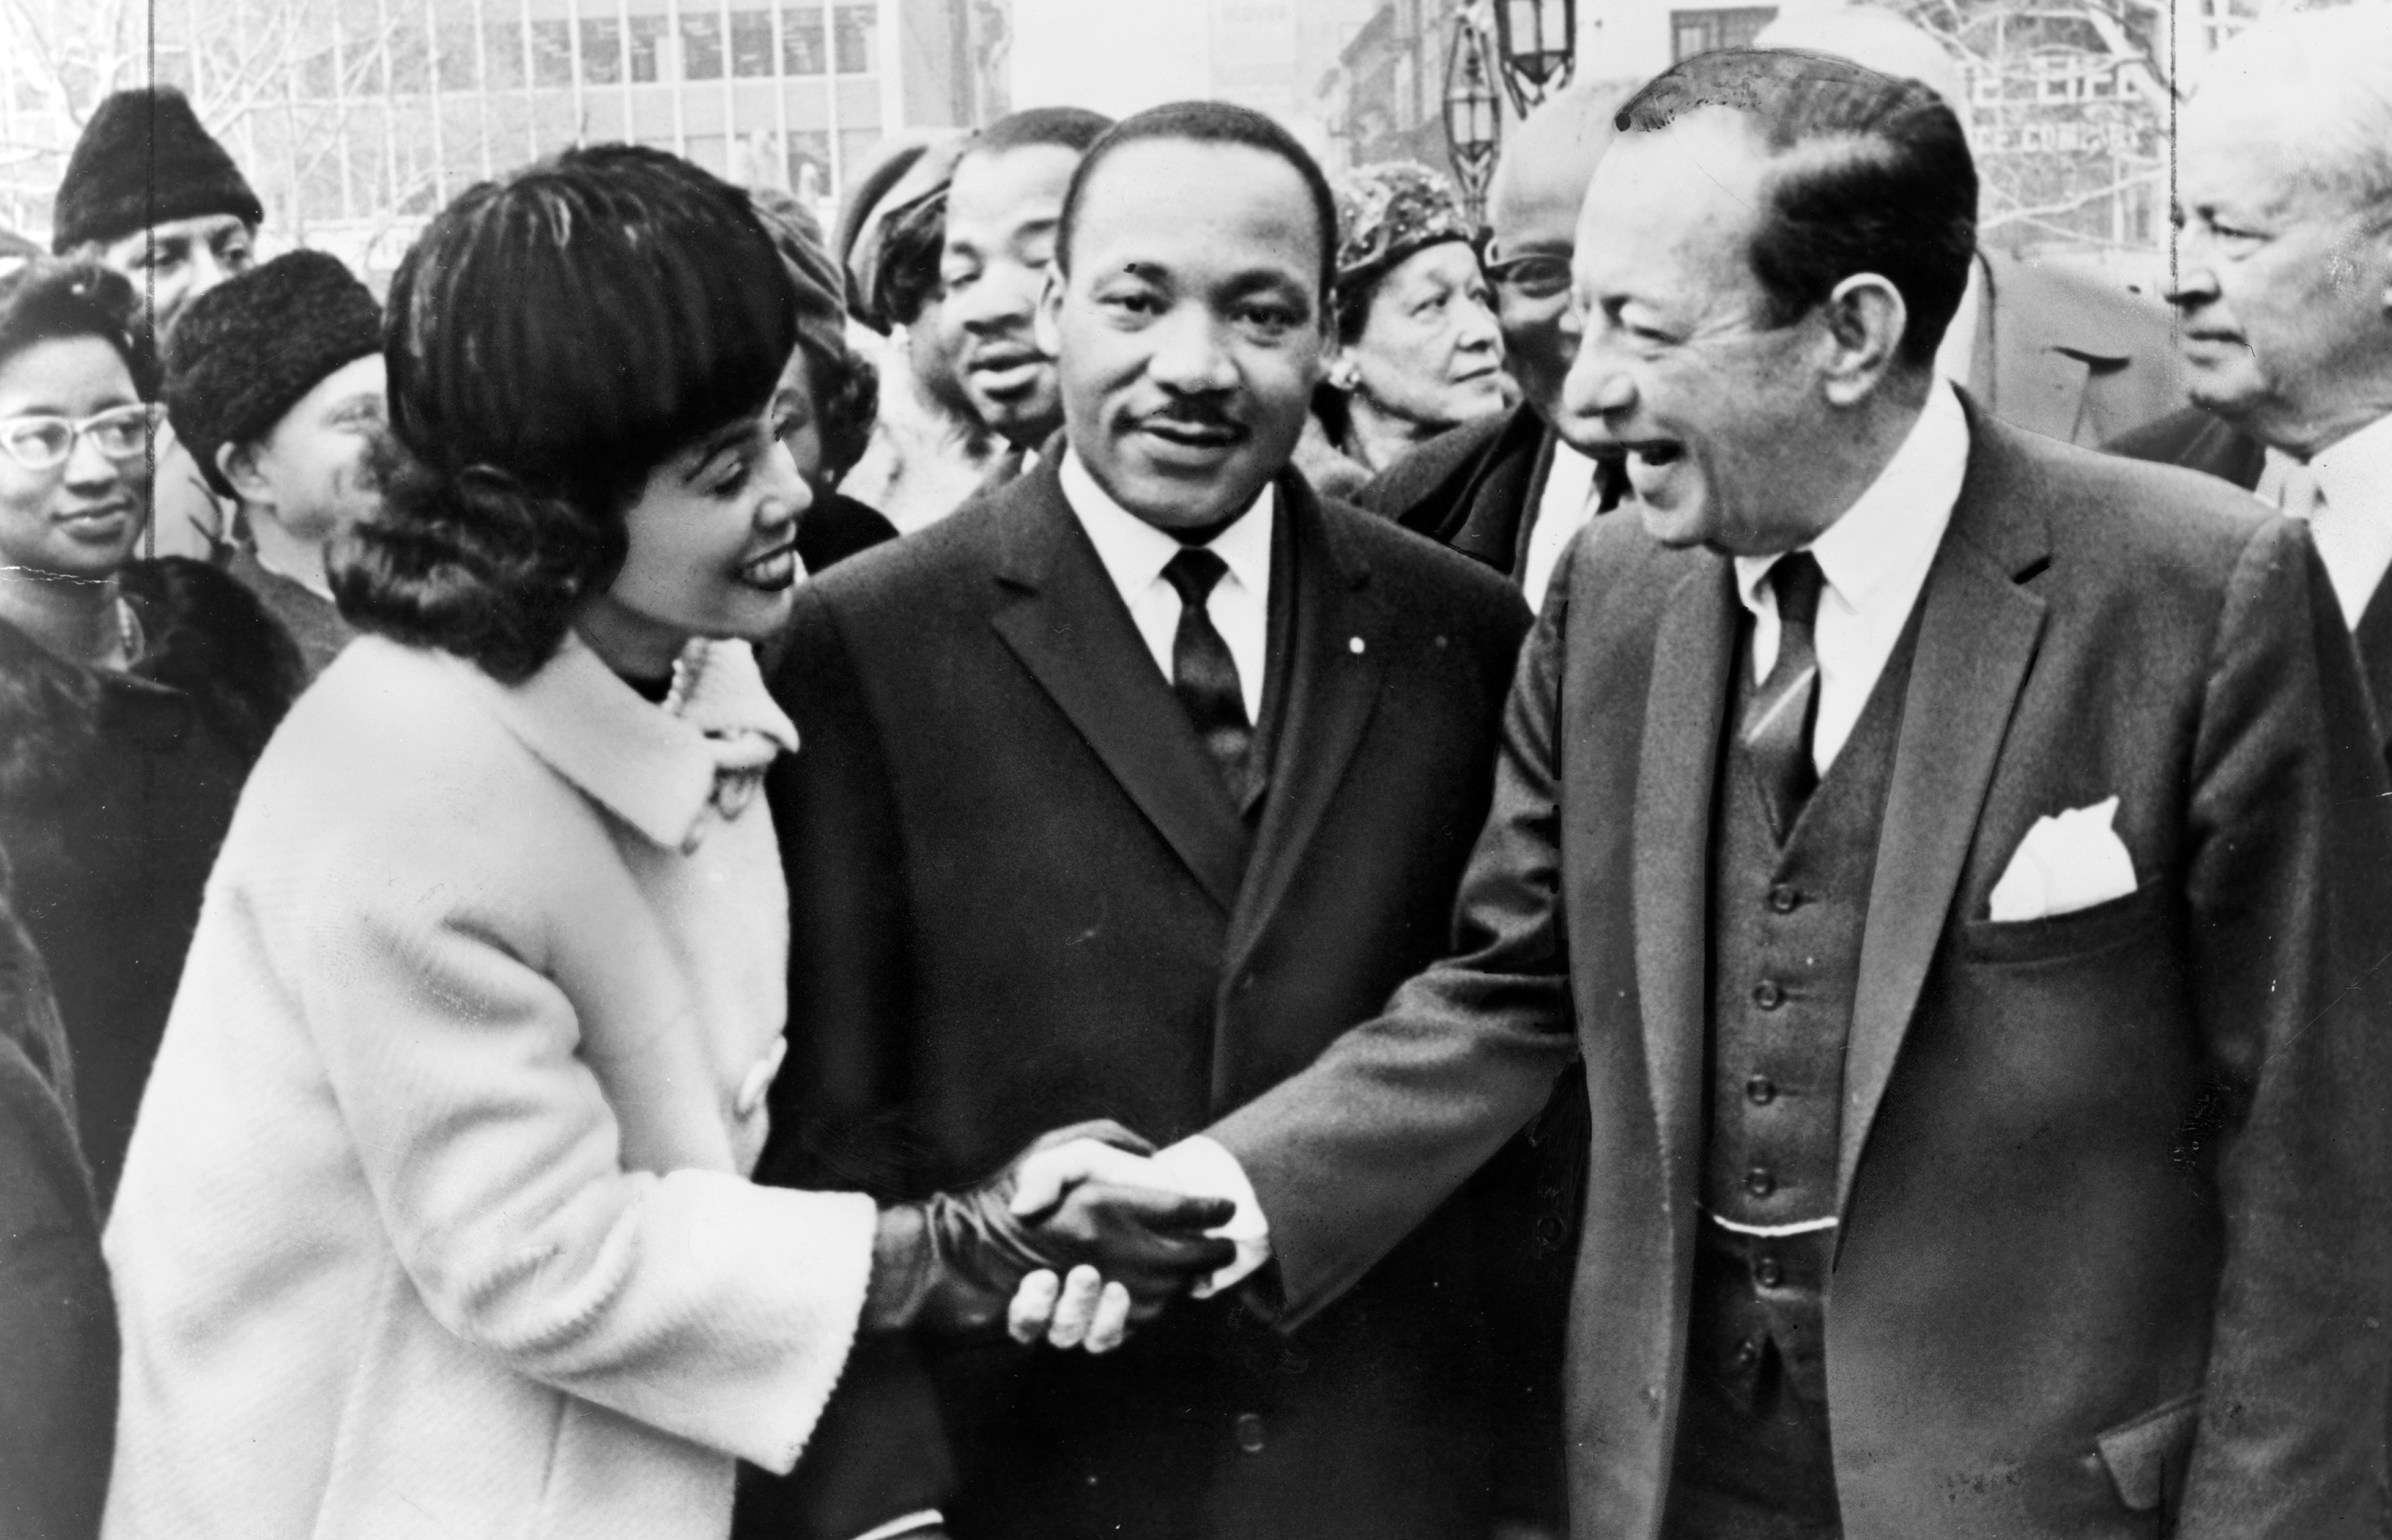 Mayor Wagner of New York greets Dr. and Mrs. Luther King, Jr. at City Hall. Robert Ferdinand Wagner II.